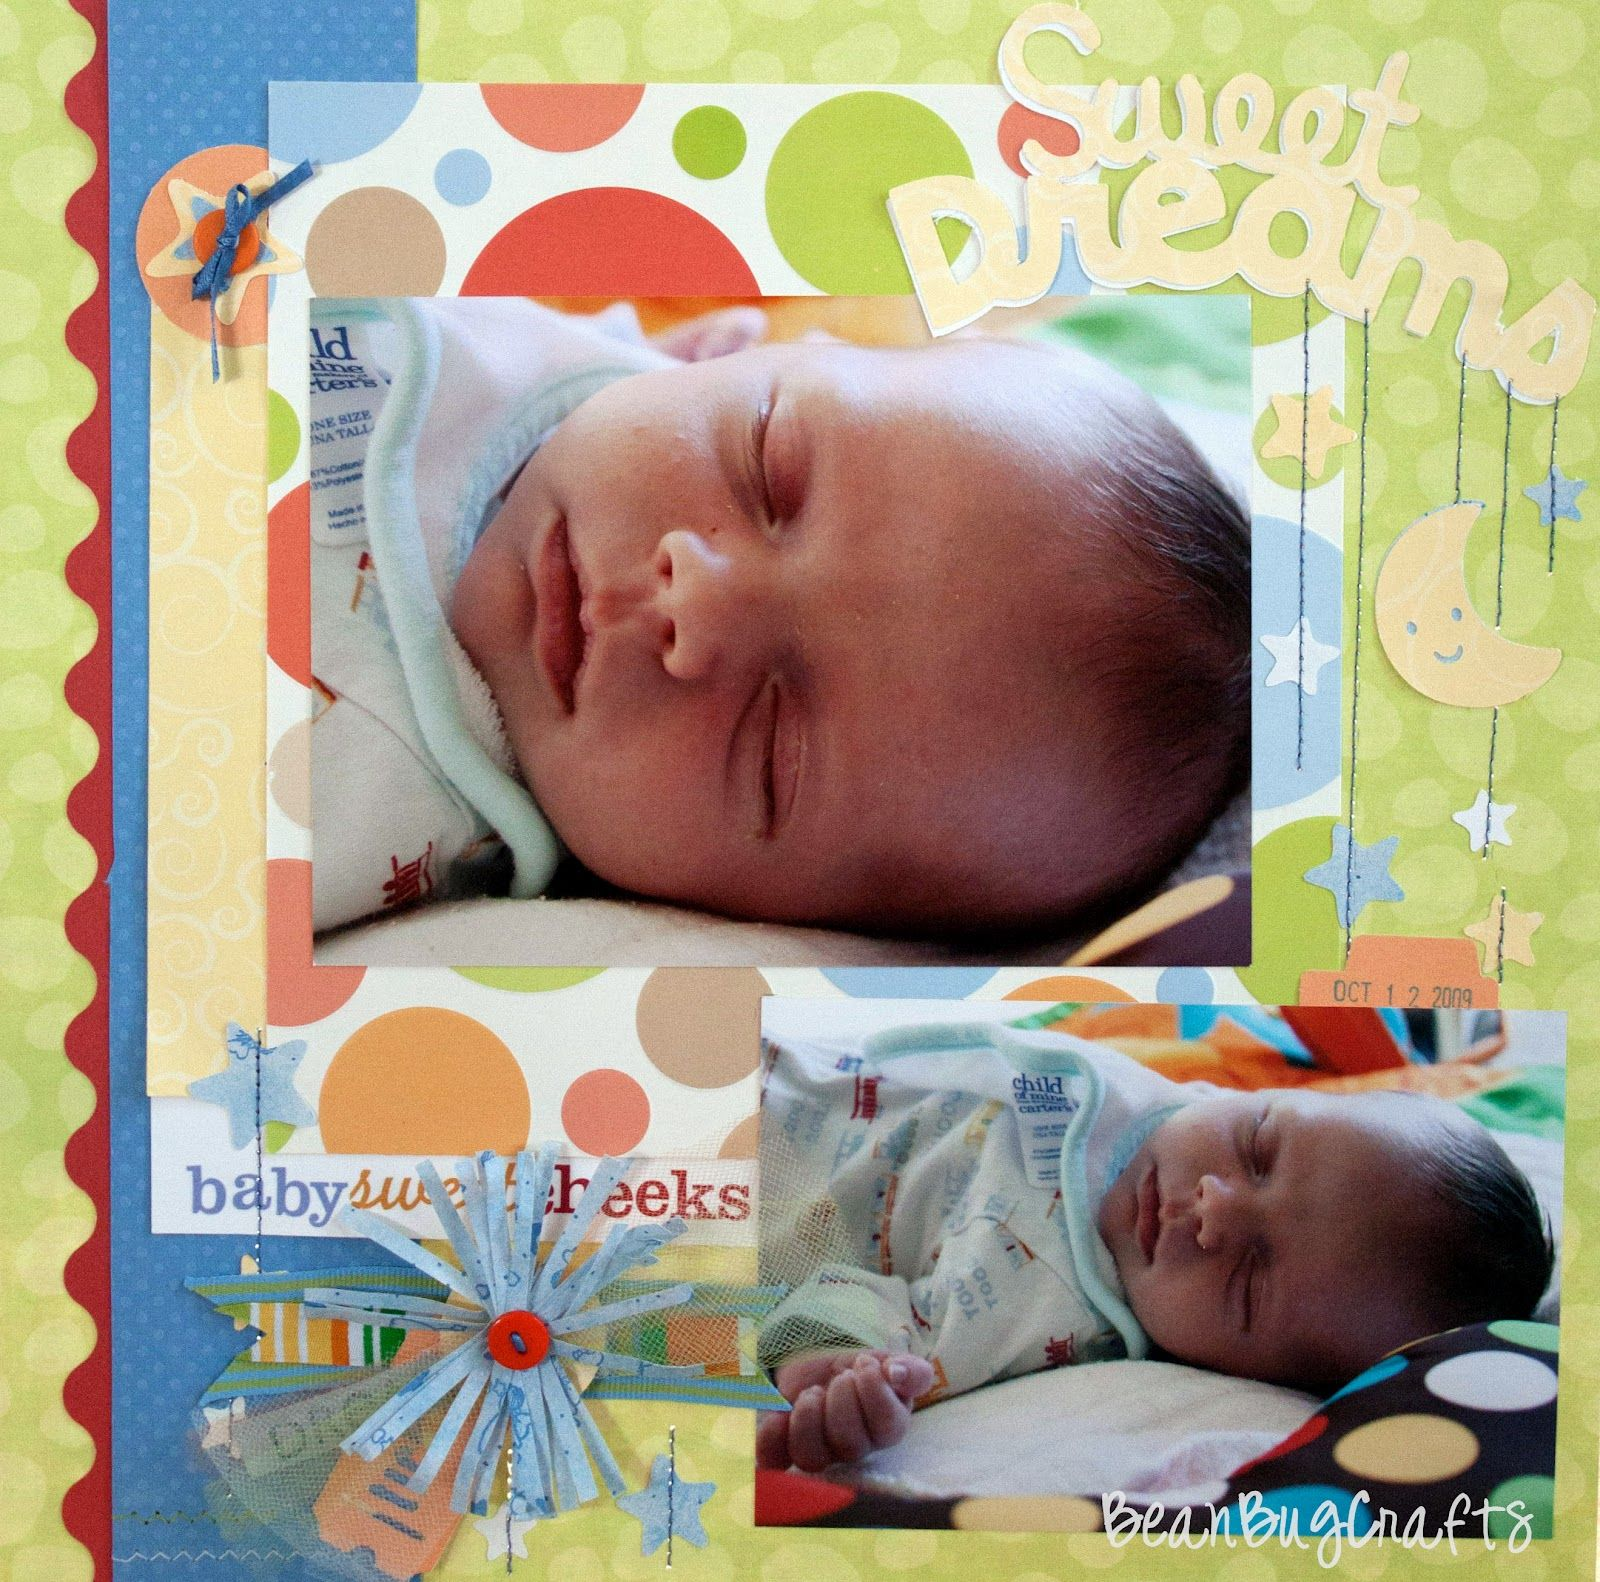 BeanBugCrafts: Scrapbook Challenge Throwdown: Day Five